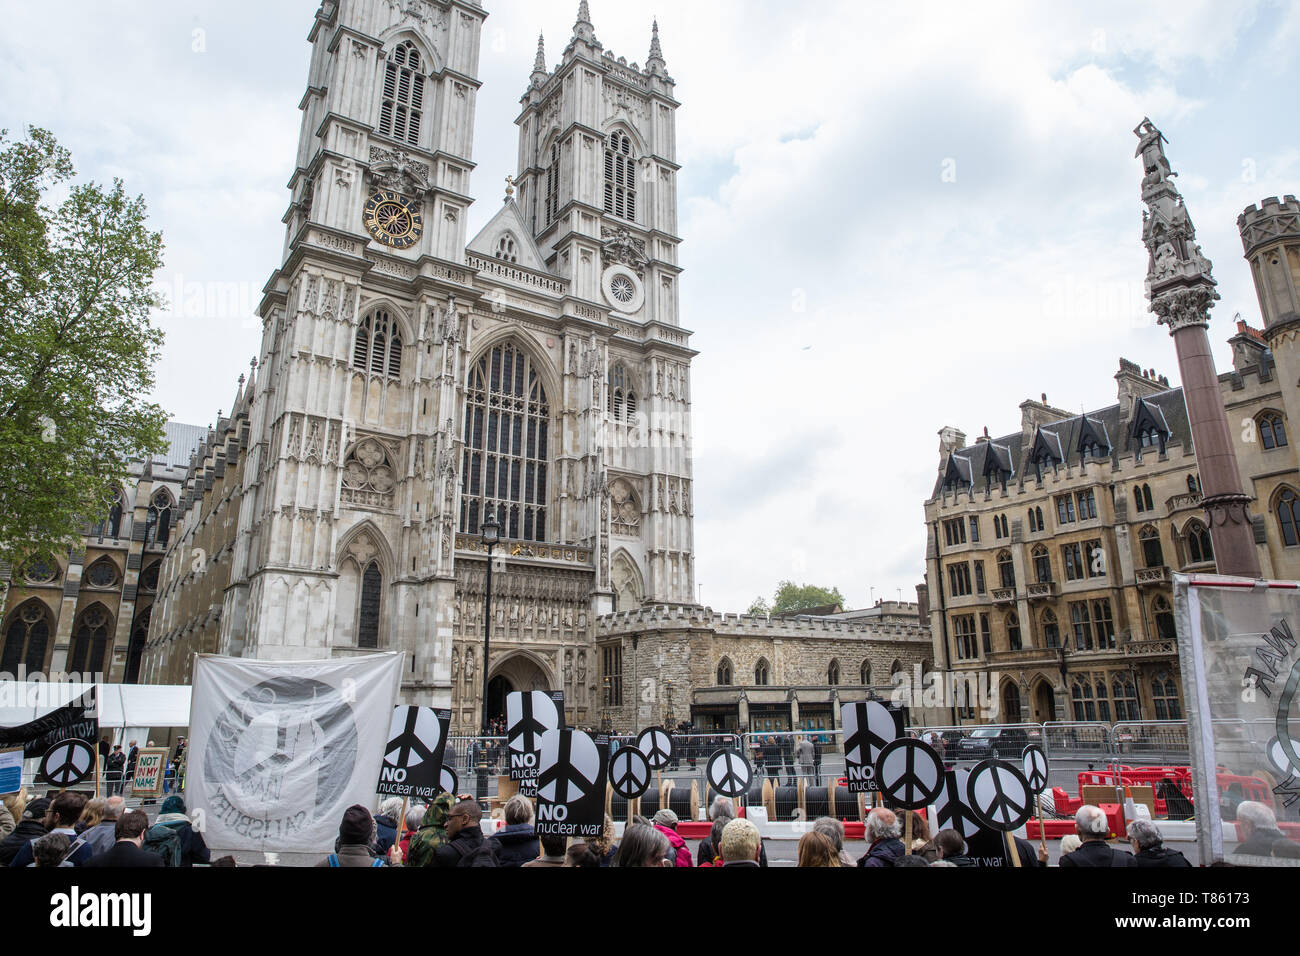 London, UK. 3 May, 2019. Campaigners from Campaign For Nuclear Disarmament (CND), Stop the War Coalition, the Peace Pledge Union, the Quakers and othe - Stock Image